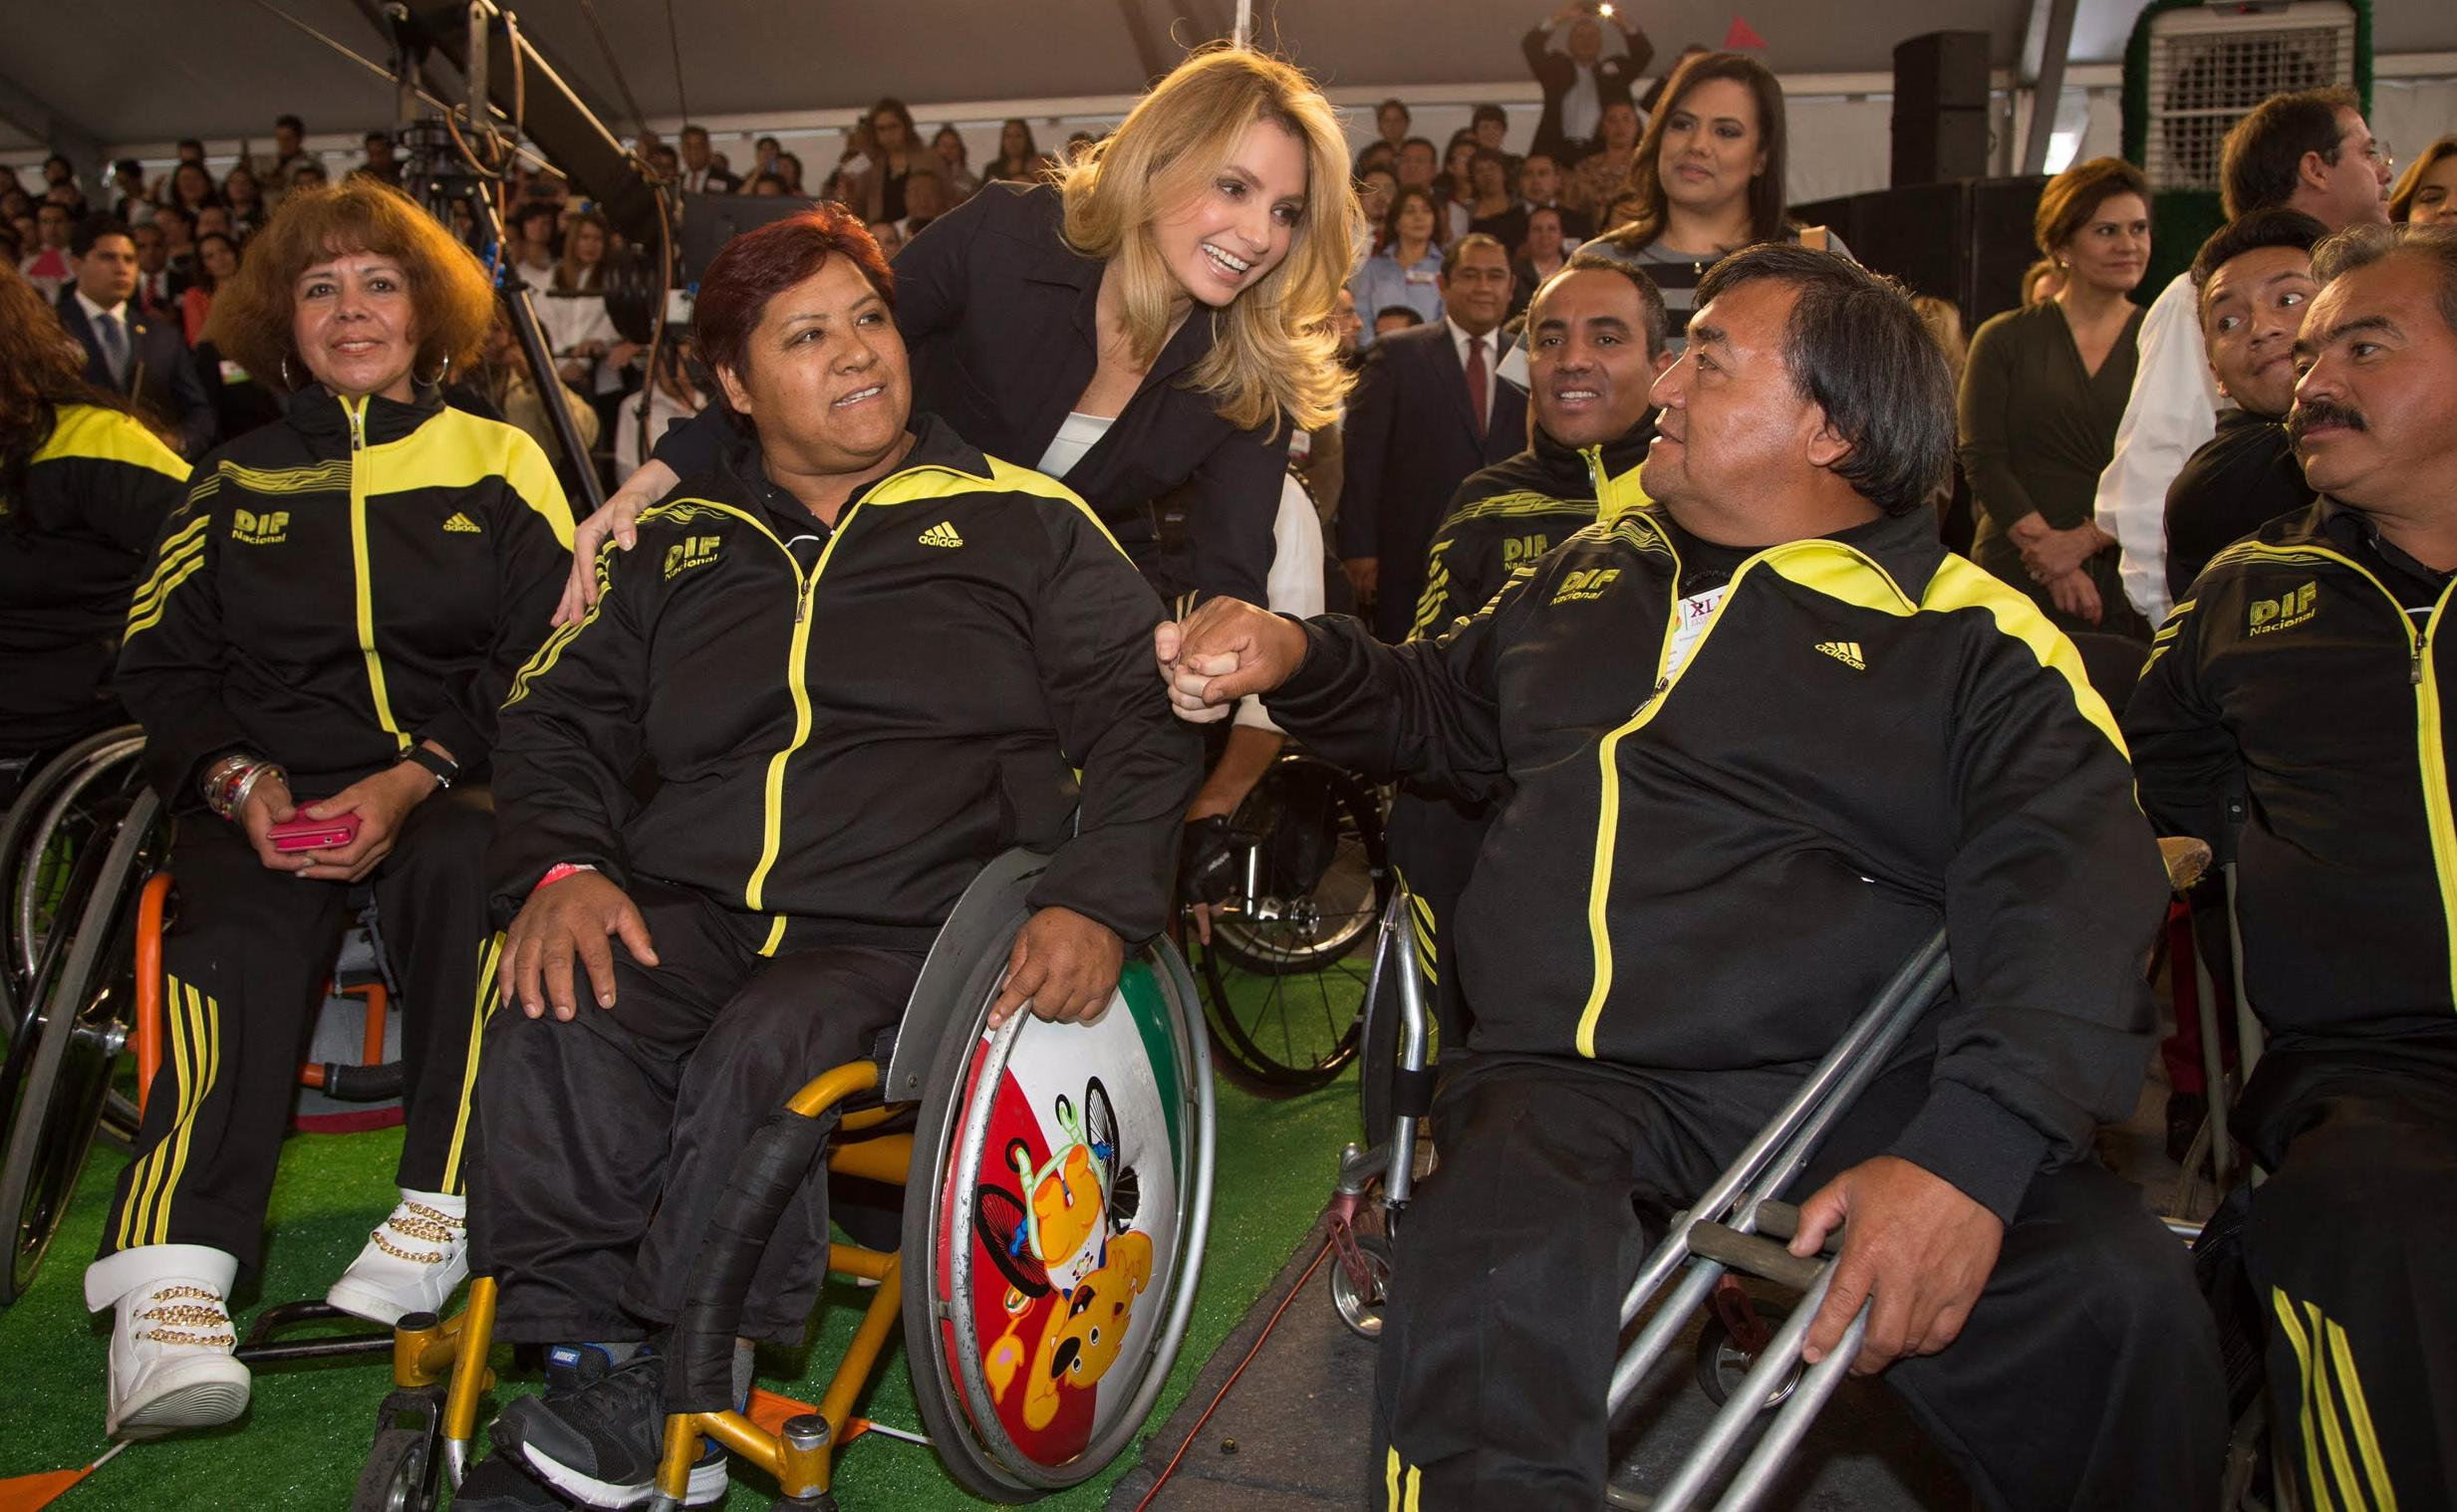 Angélica Rivera de Peña said that President Enrique Peña Nieto is working to achieve the inclusive Mexico with rights that persons with disabilities deserve.